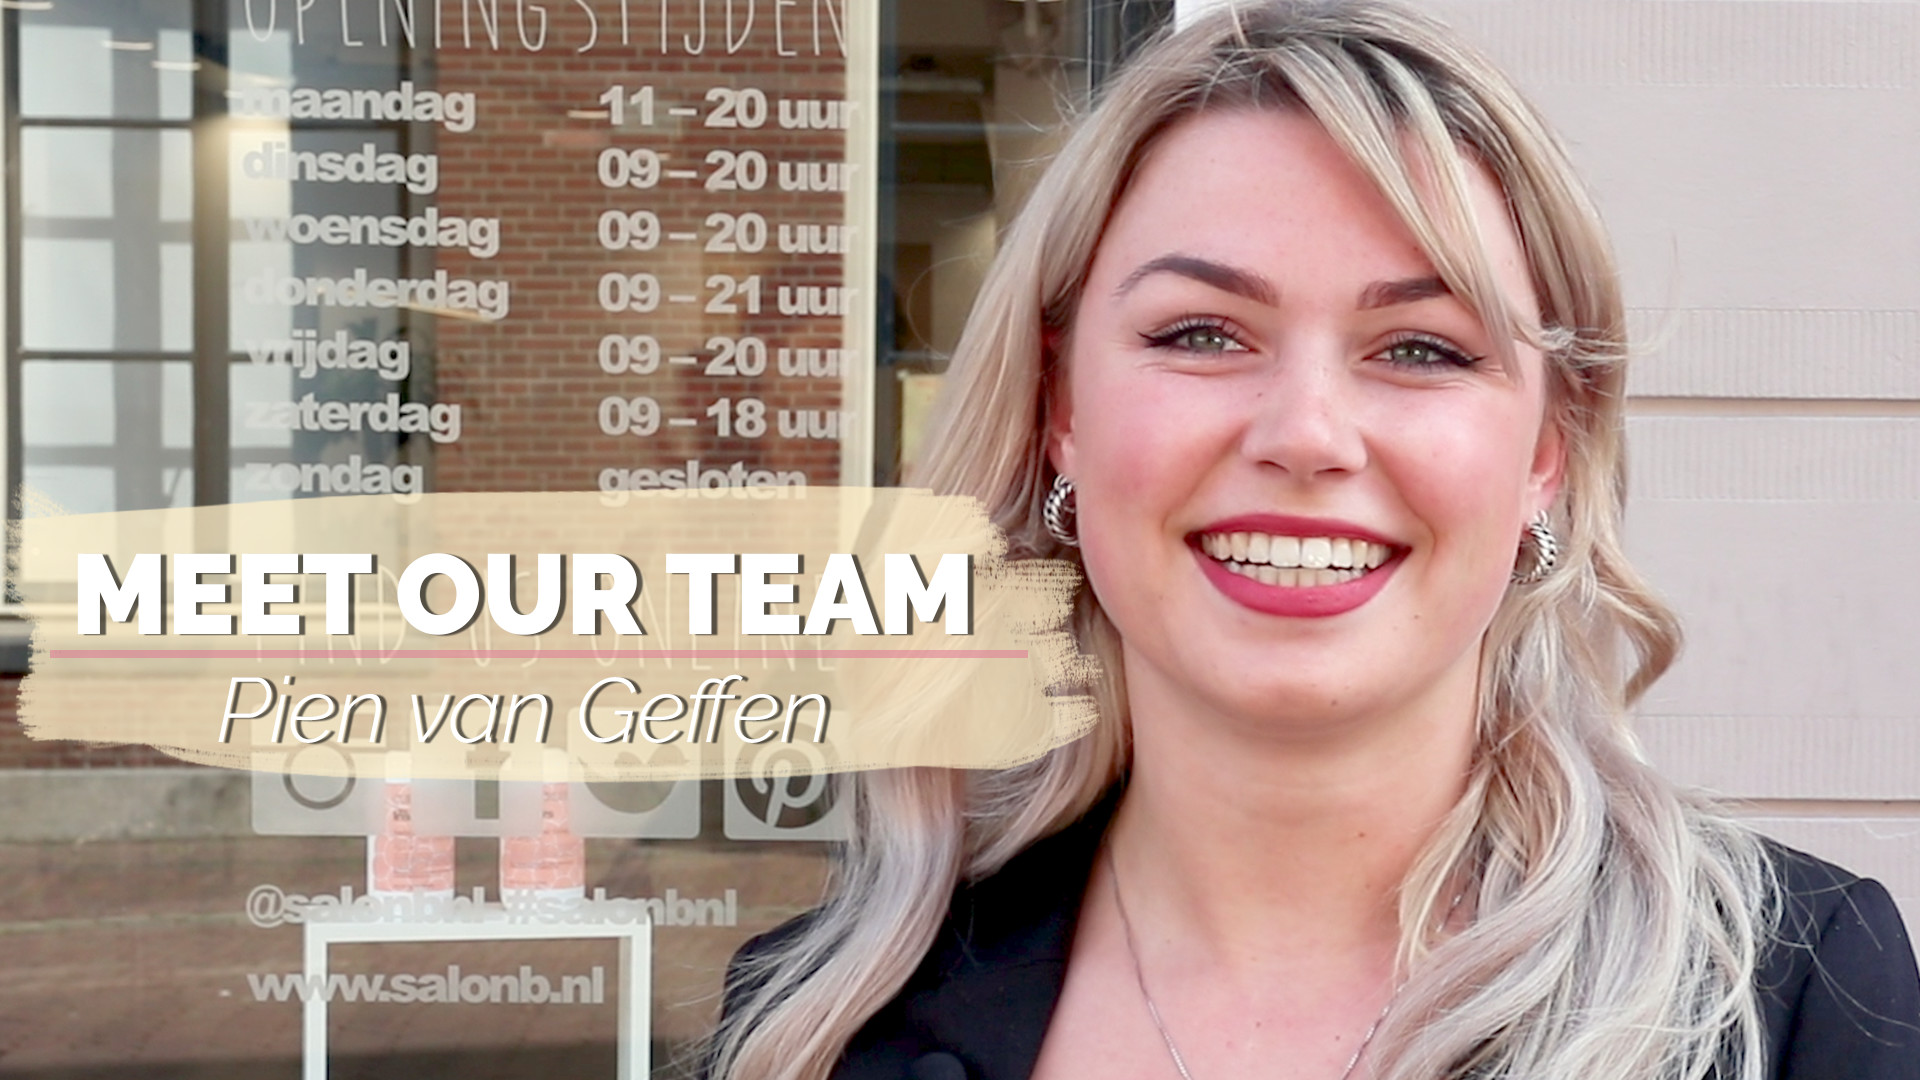 Meet our team: Pien van Geffen